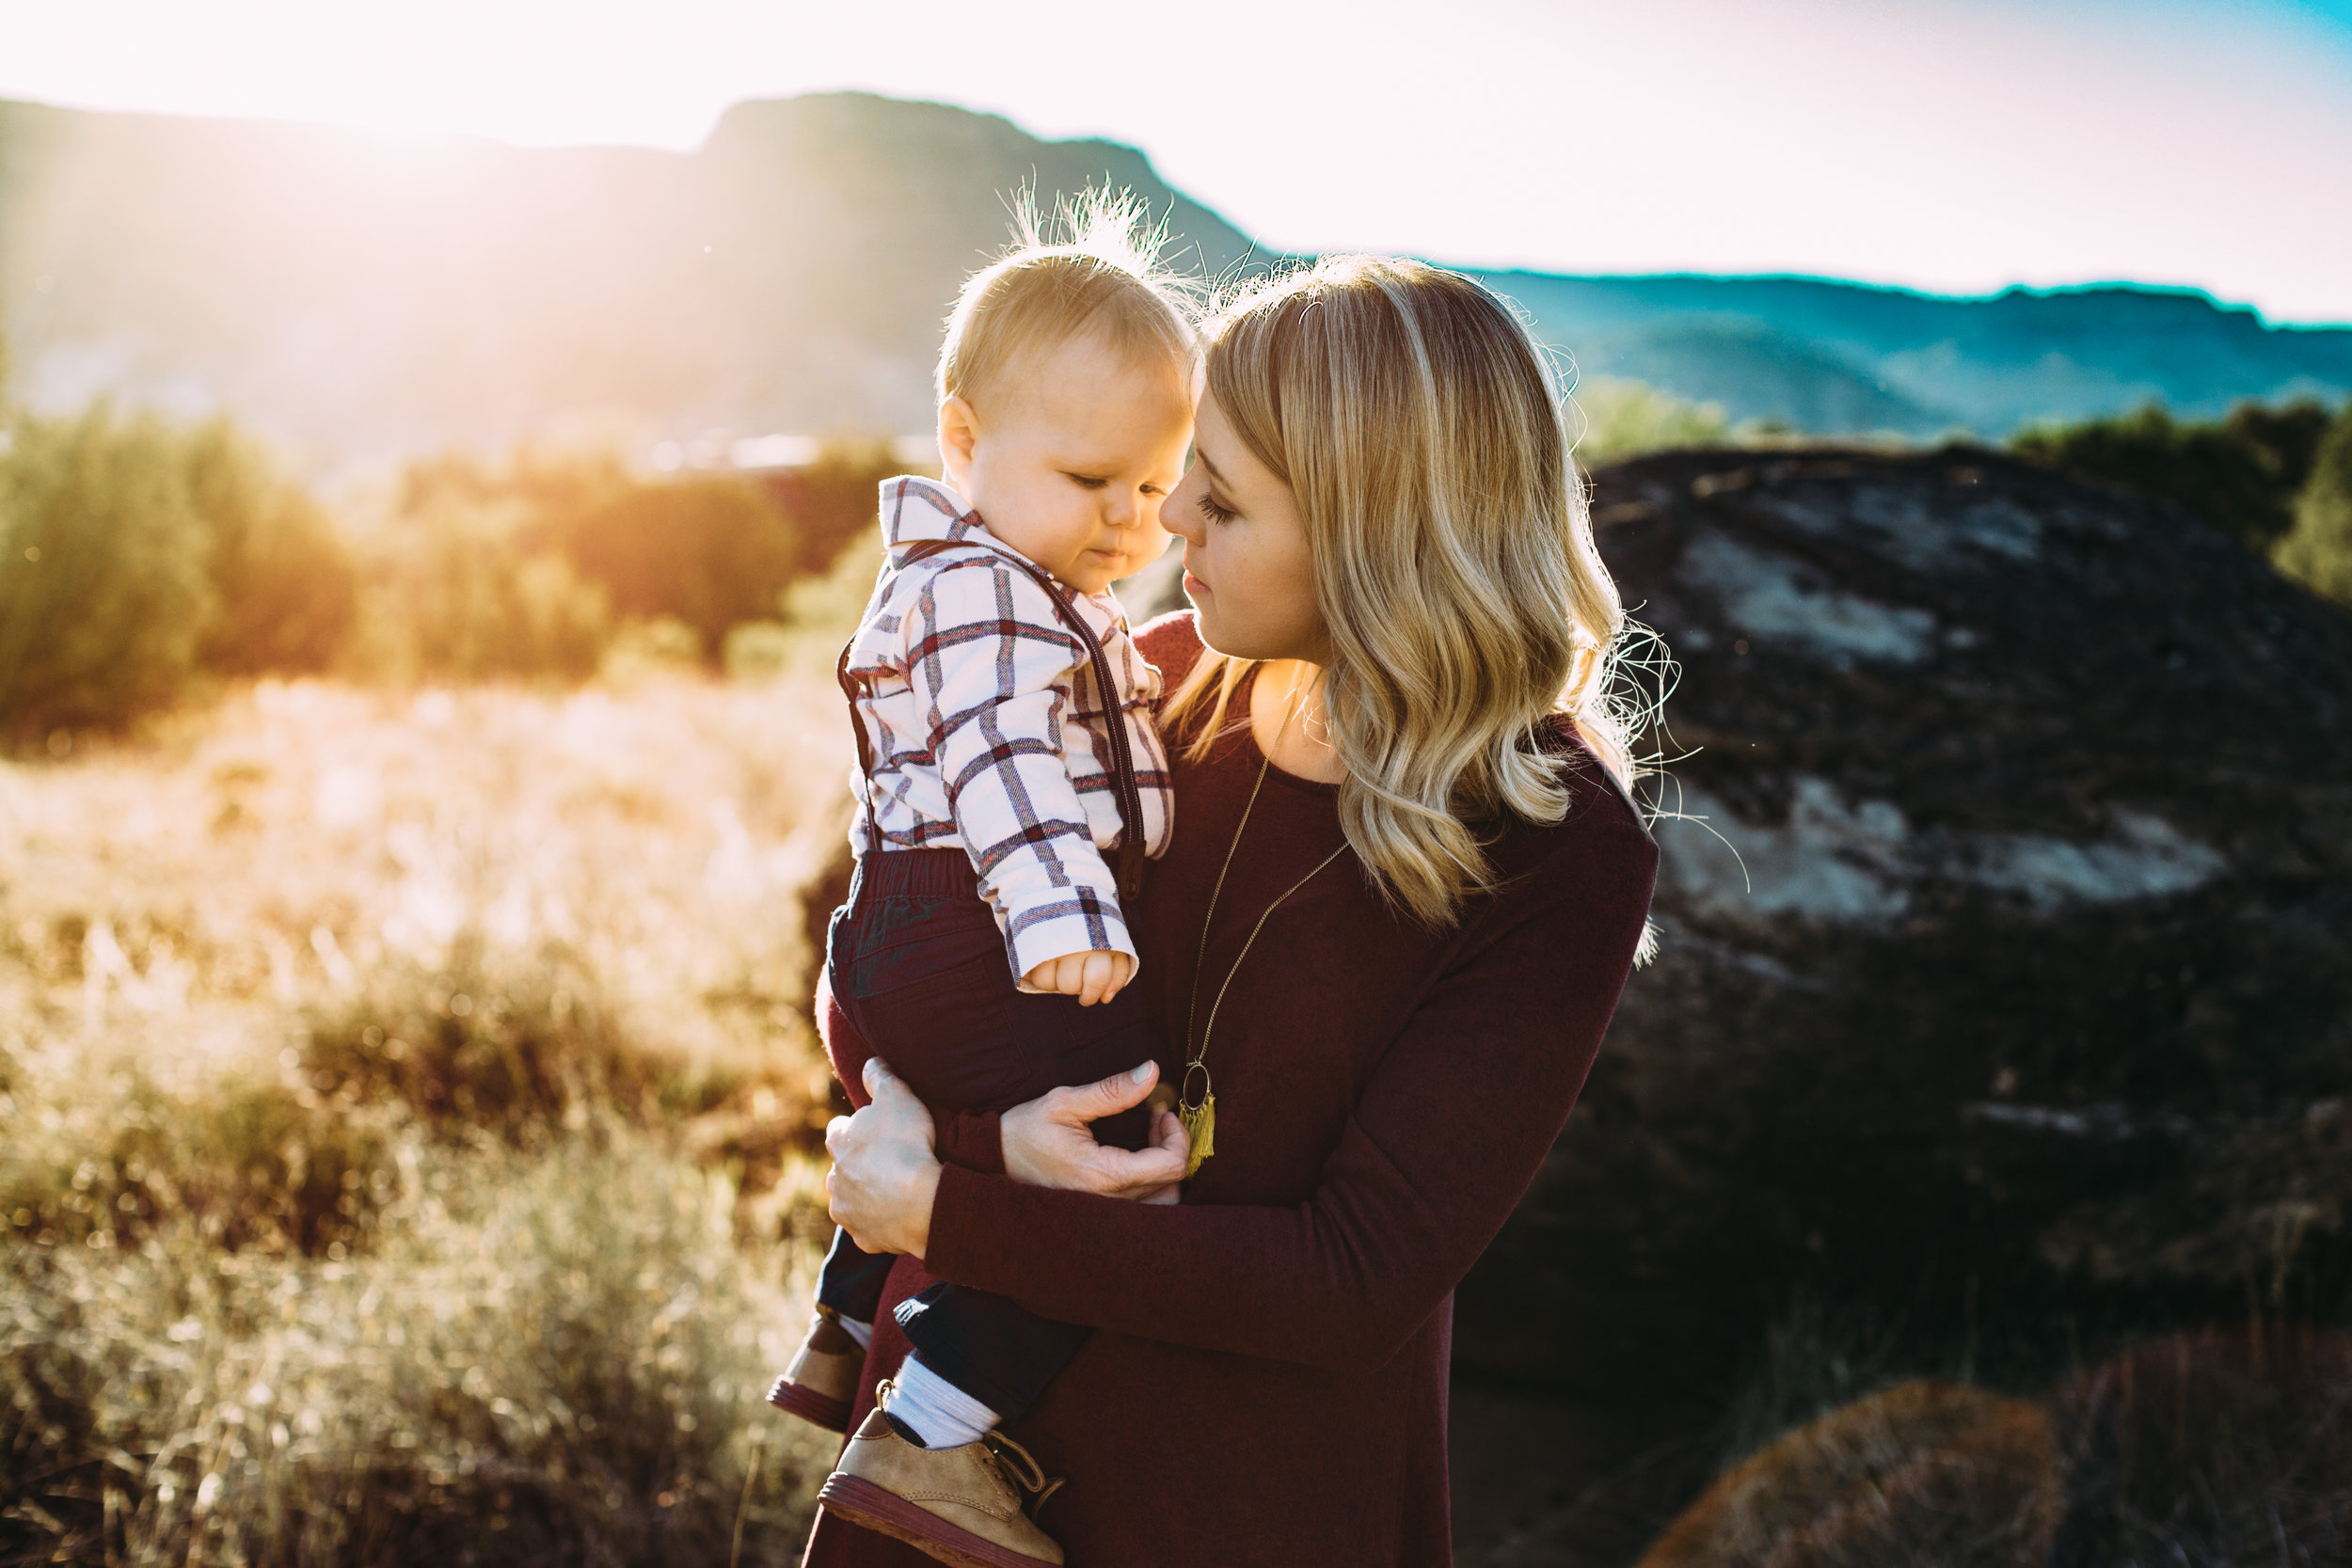 Mom snuggles baby boy at sunset #tealawardphotography #texasfamilyphotographer #amarillophotographer #amarillofamilyphotographer #lifestylephotography #emotionalphotography #familyphotosoot #family #lovingsiblings #purejoy #familyphotos #familyphotographer #greatoutdoors